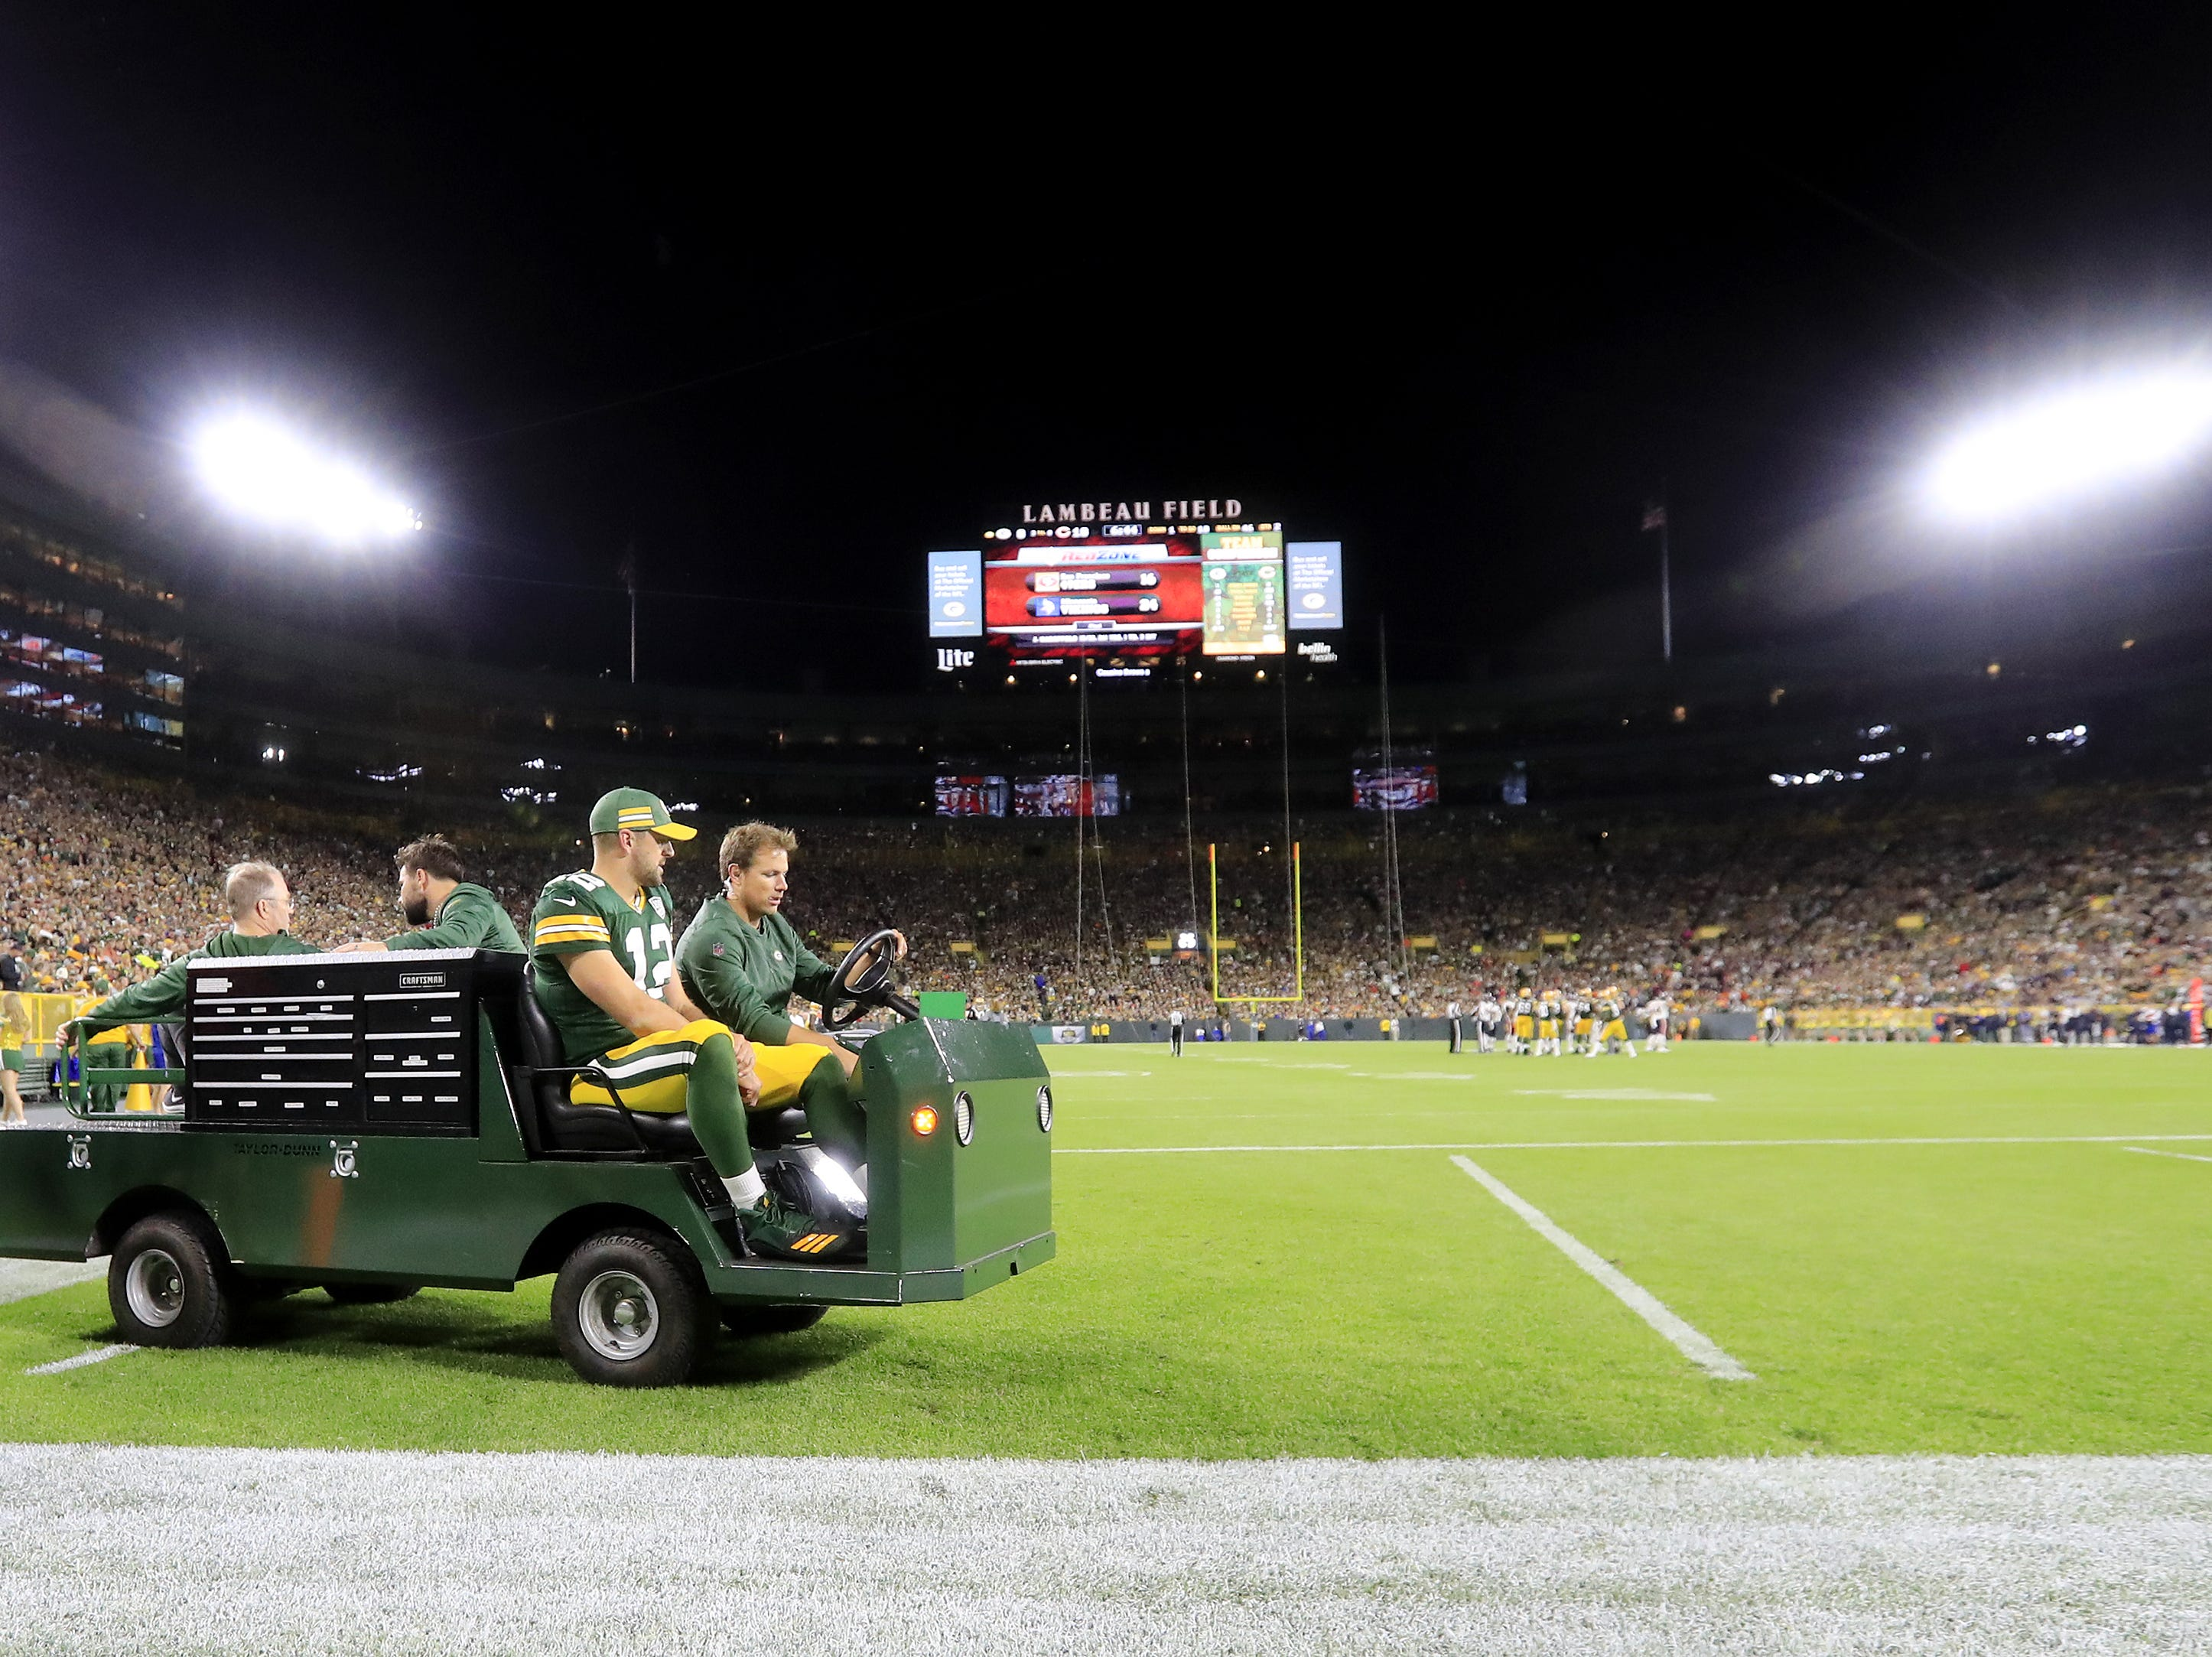 Green Bay Packers quarterback Aaron Rodgers (12) is taken off the field after sustaining an injury in the second quarter against the Chicago Bears at Lambeau Field on Sunday, September 9, 2018 in Green Bay, Wis.